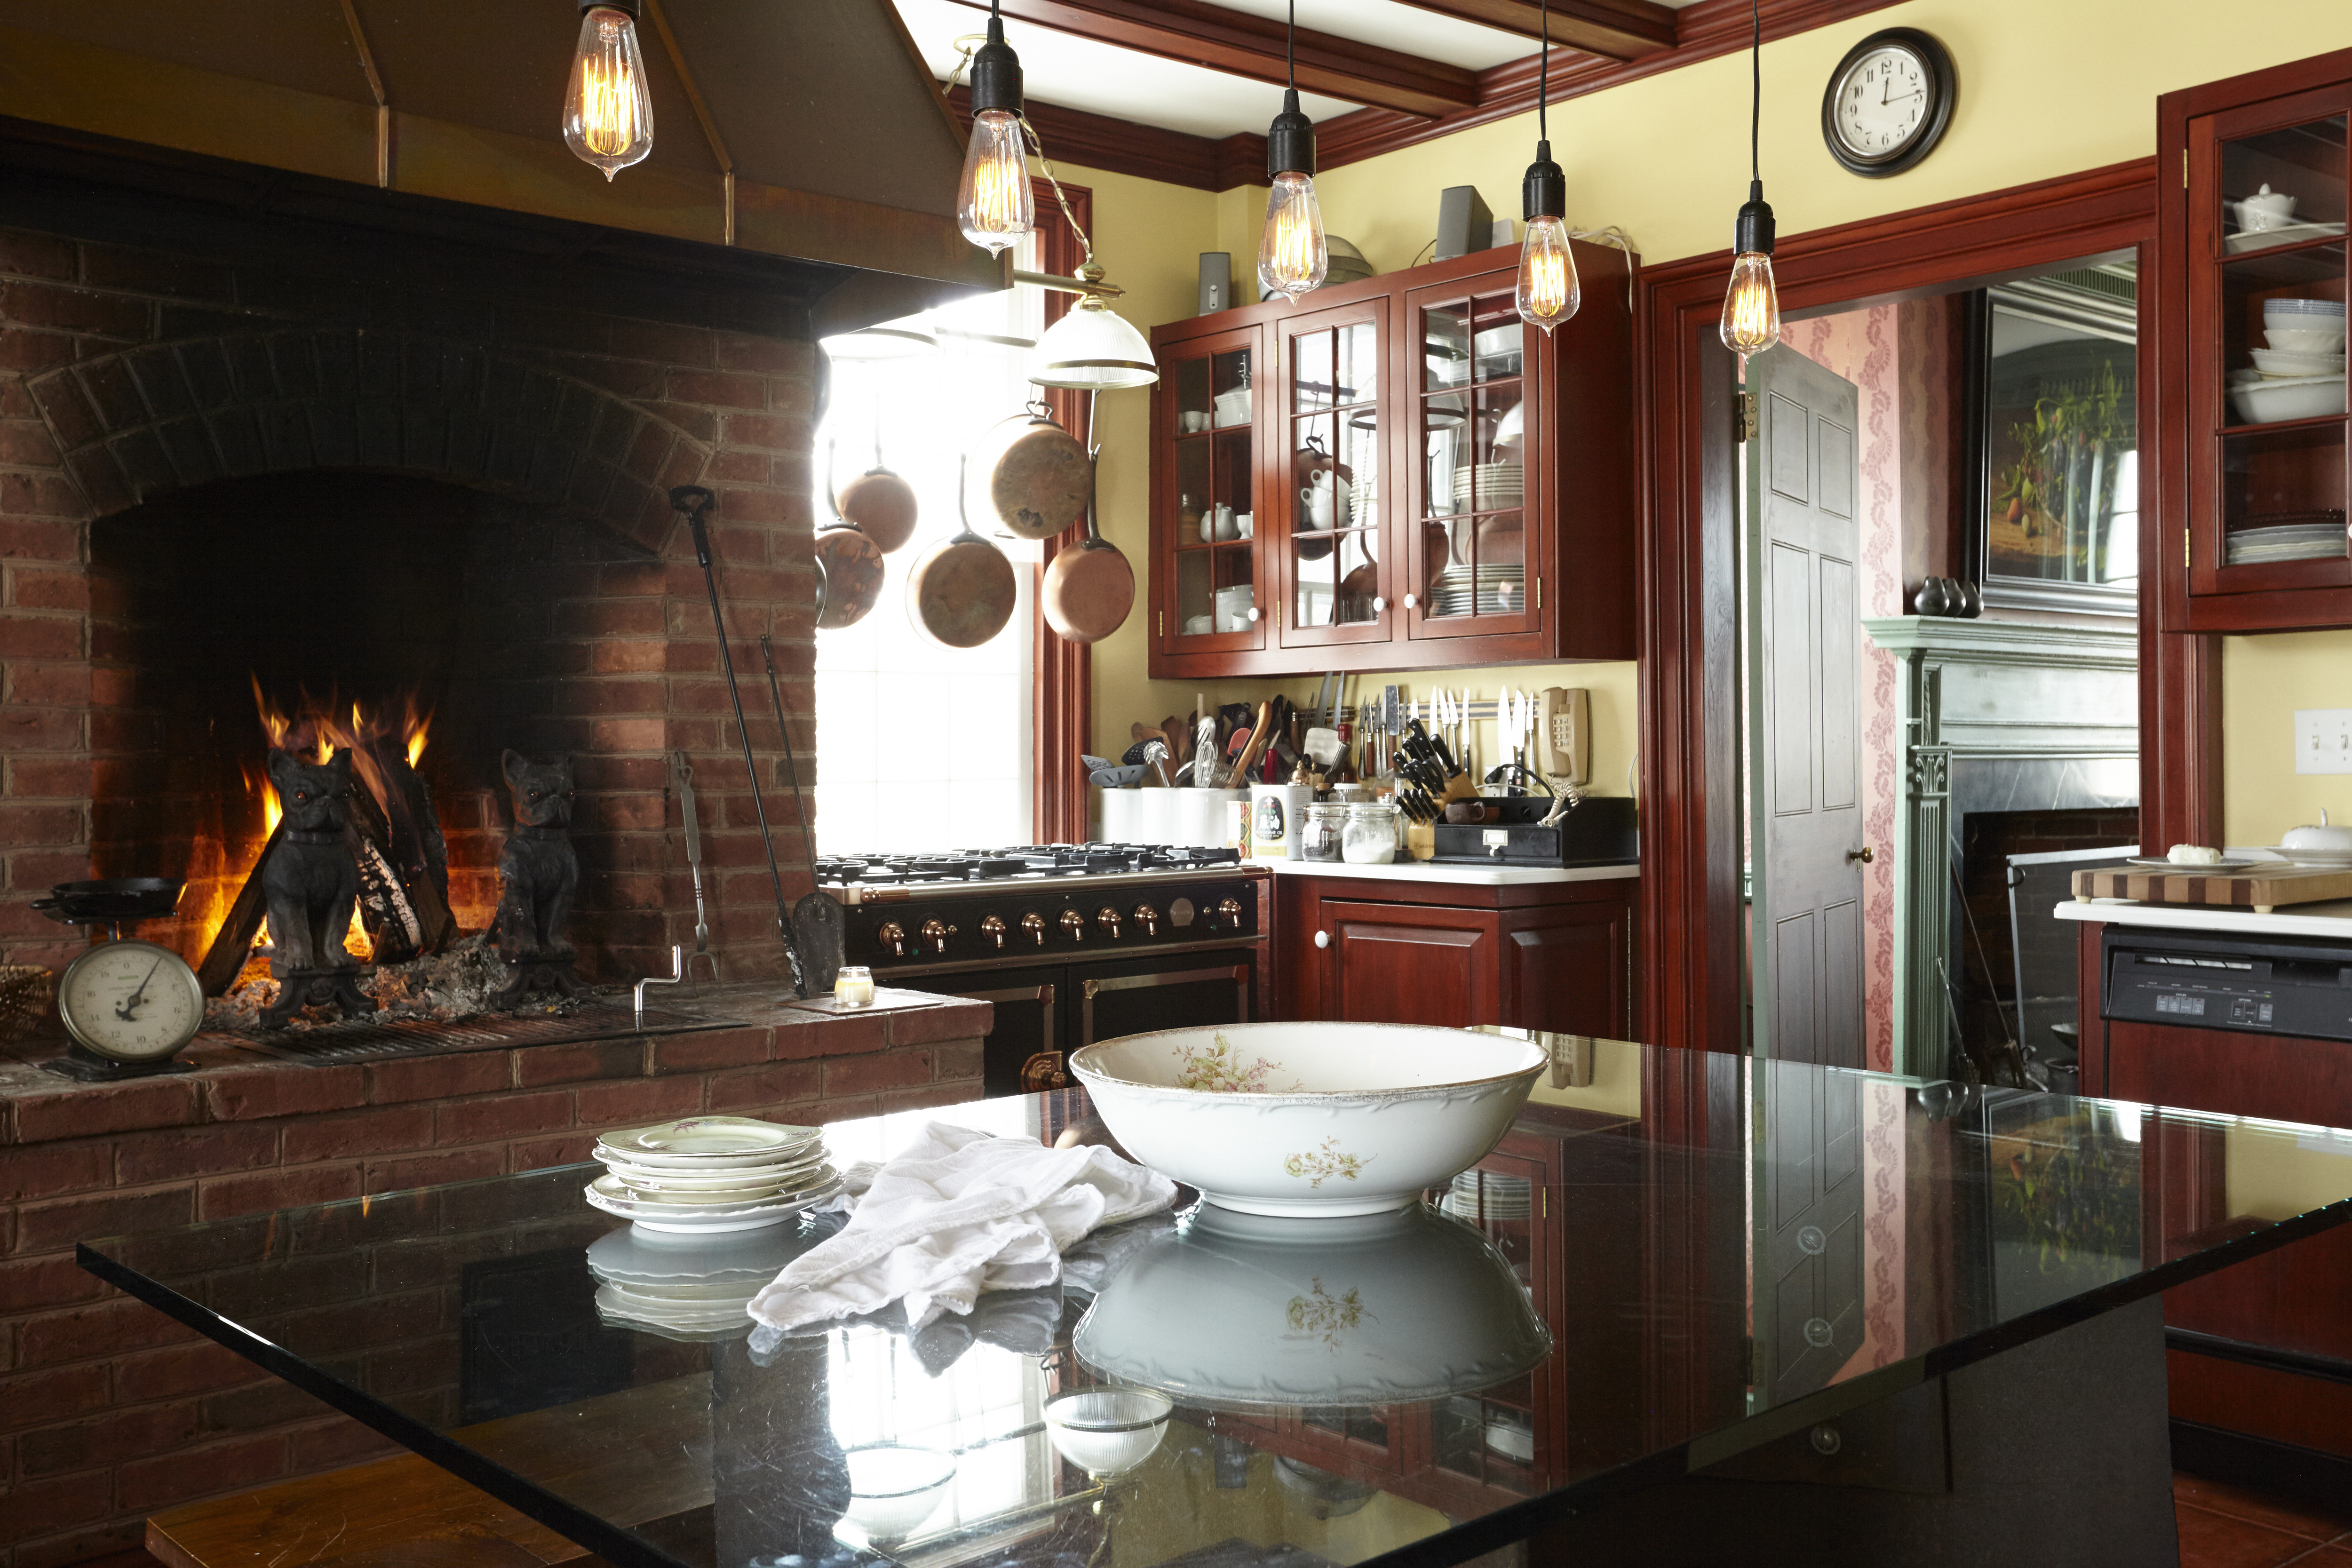 Cozy Kitchen  The Beekman Boys Upstate New York Farm  Lonny